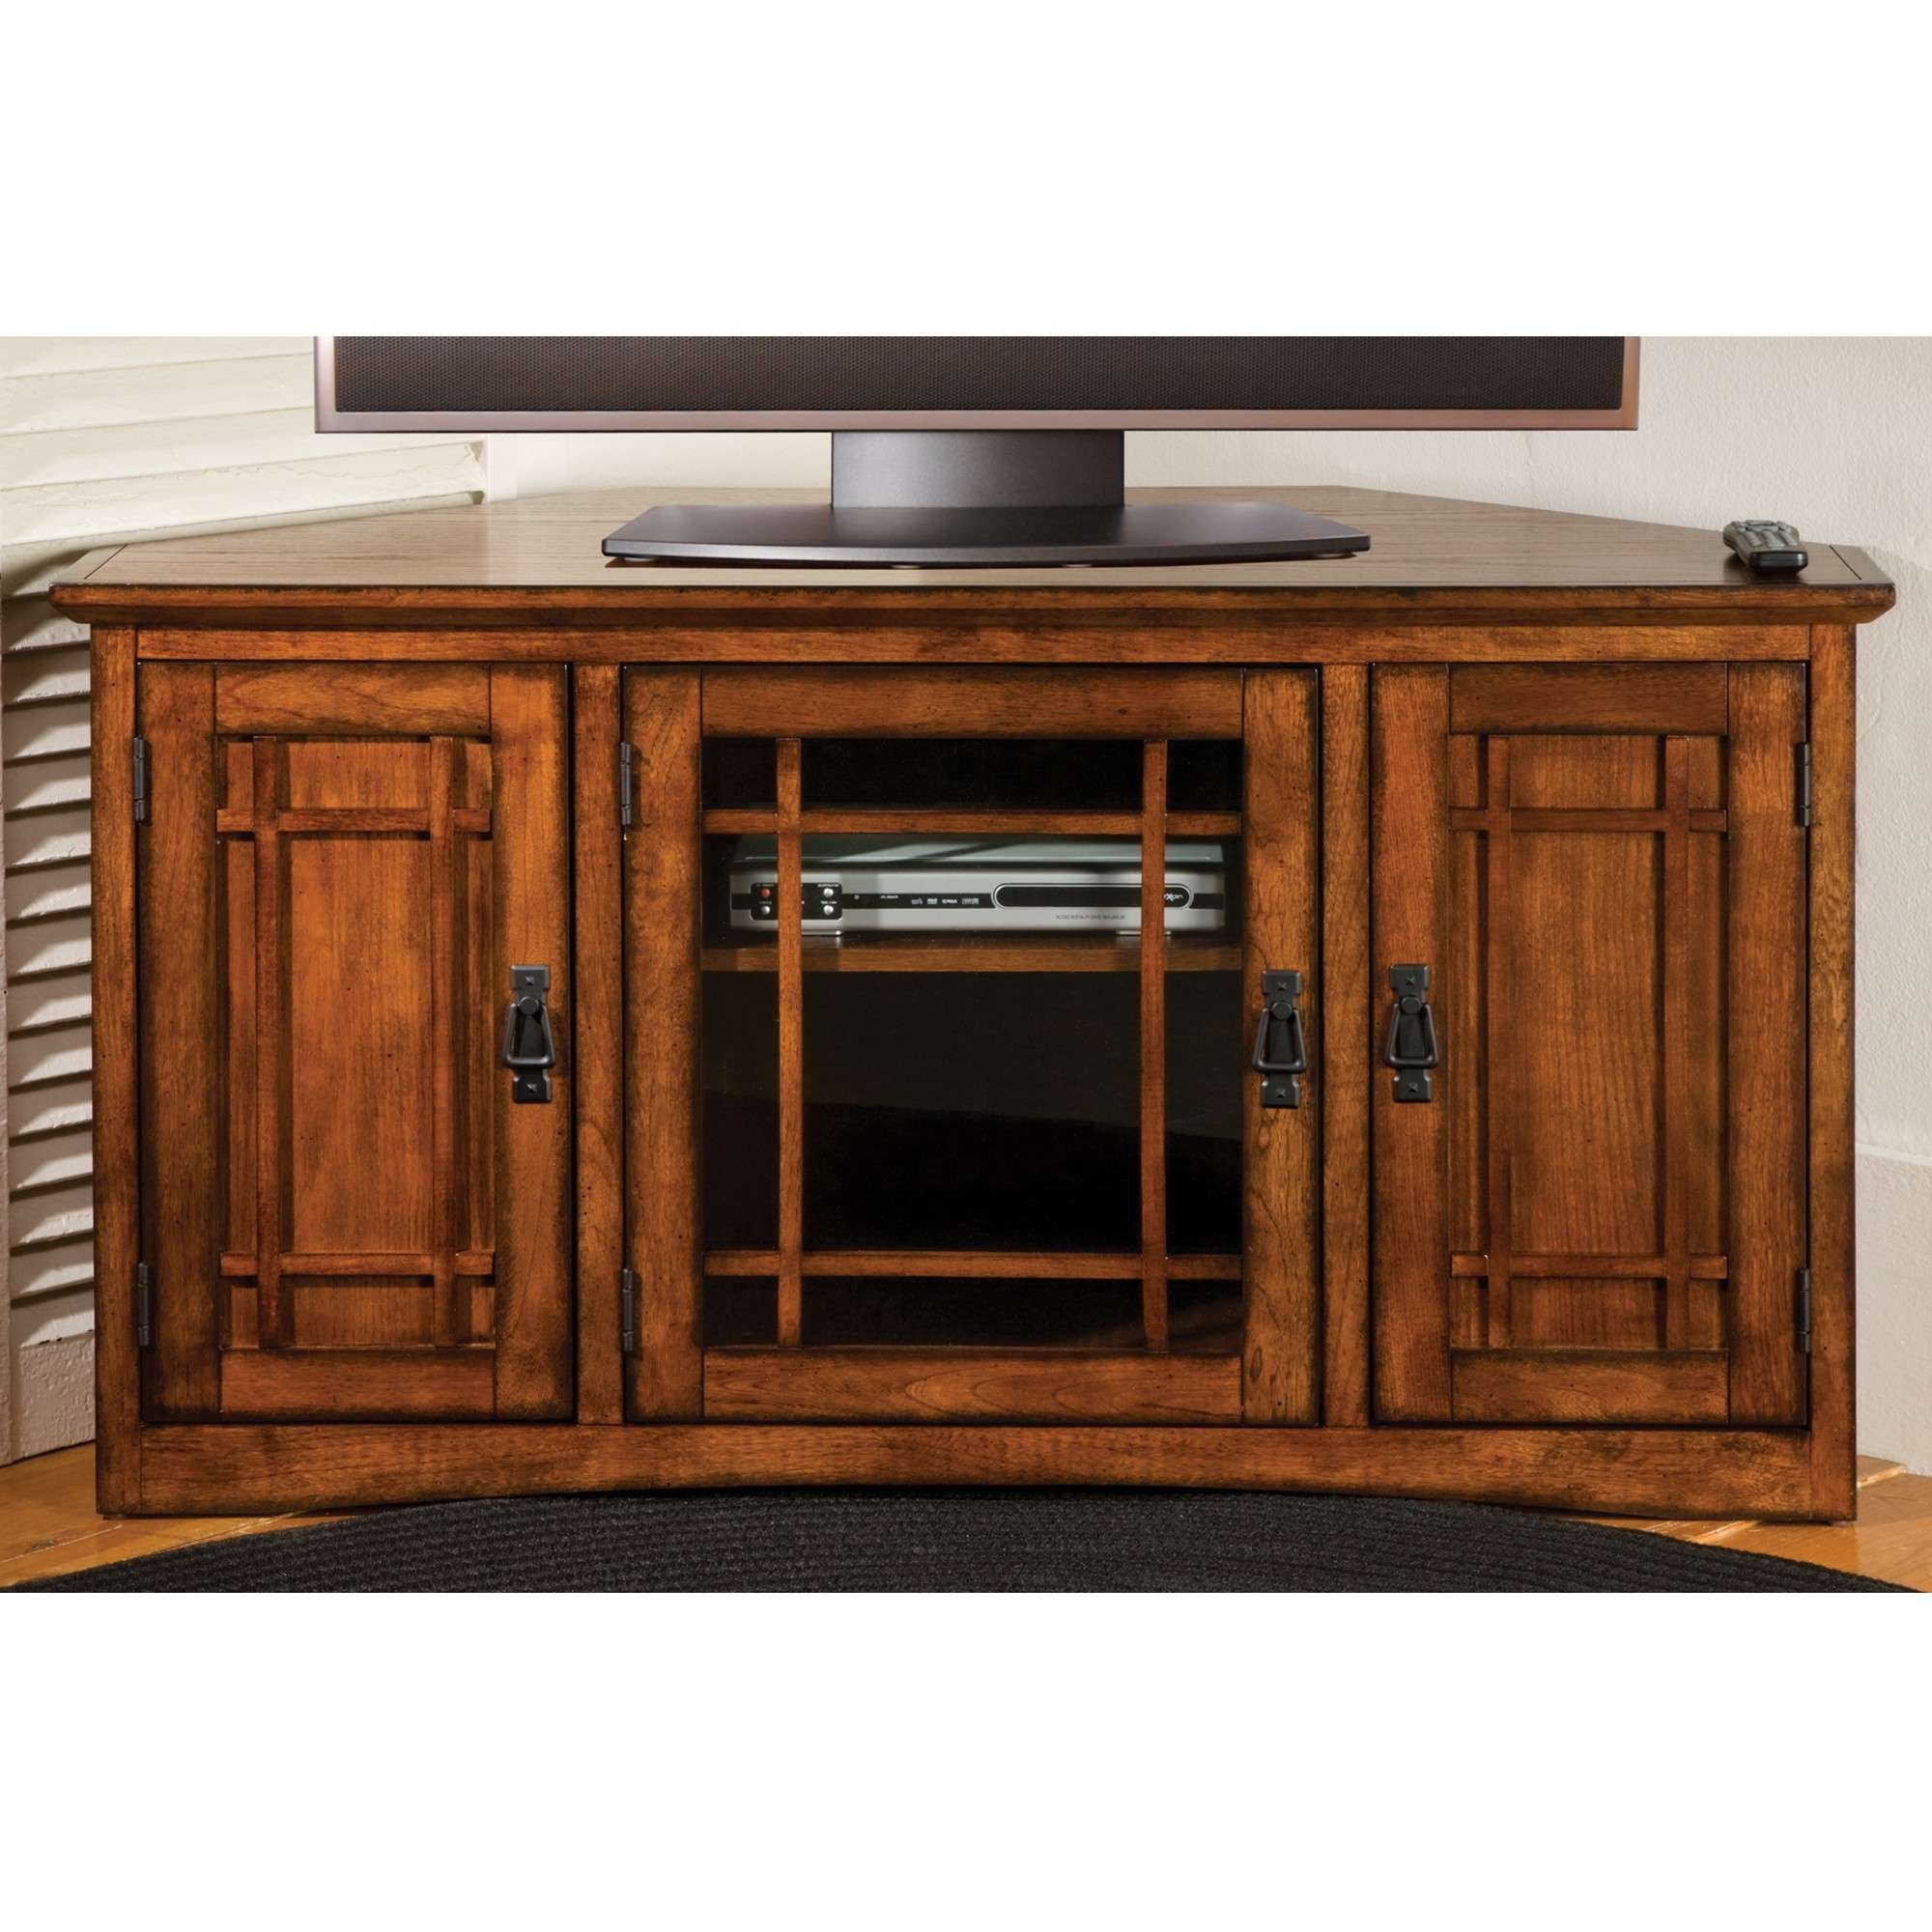 Mission Corner Tv Cabinet | Sturbridge Yankee Workshop Pertaining To Large Corner Tv Cabinets (View 19 of 20)